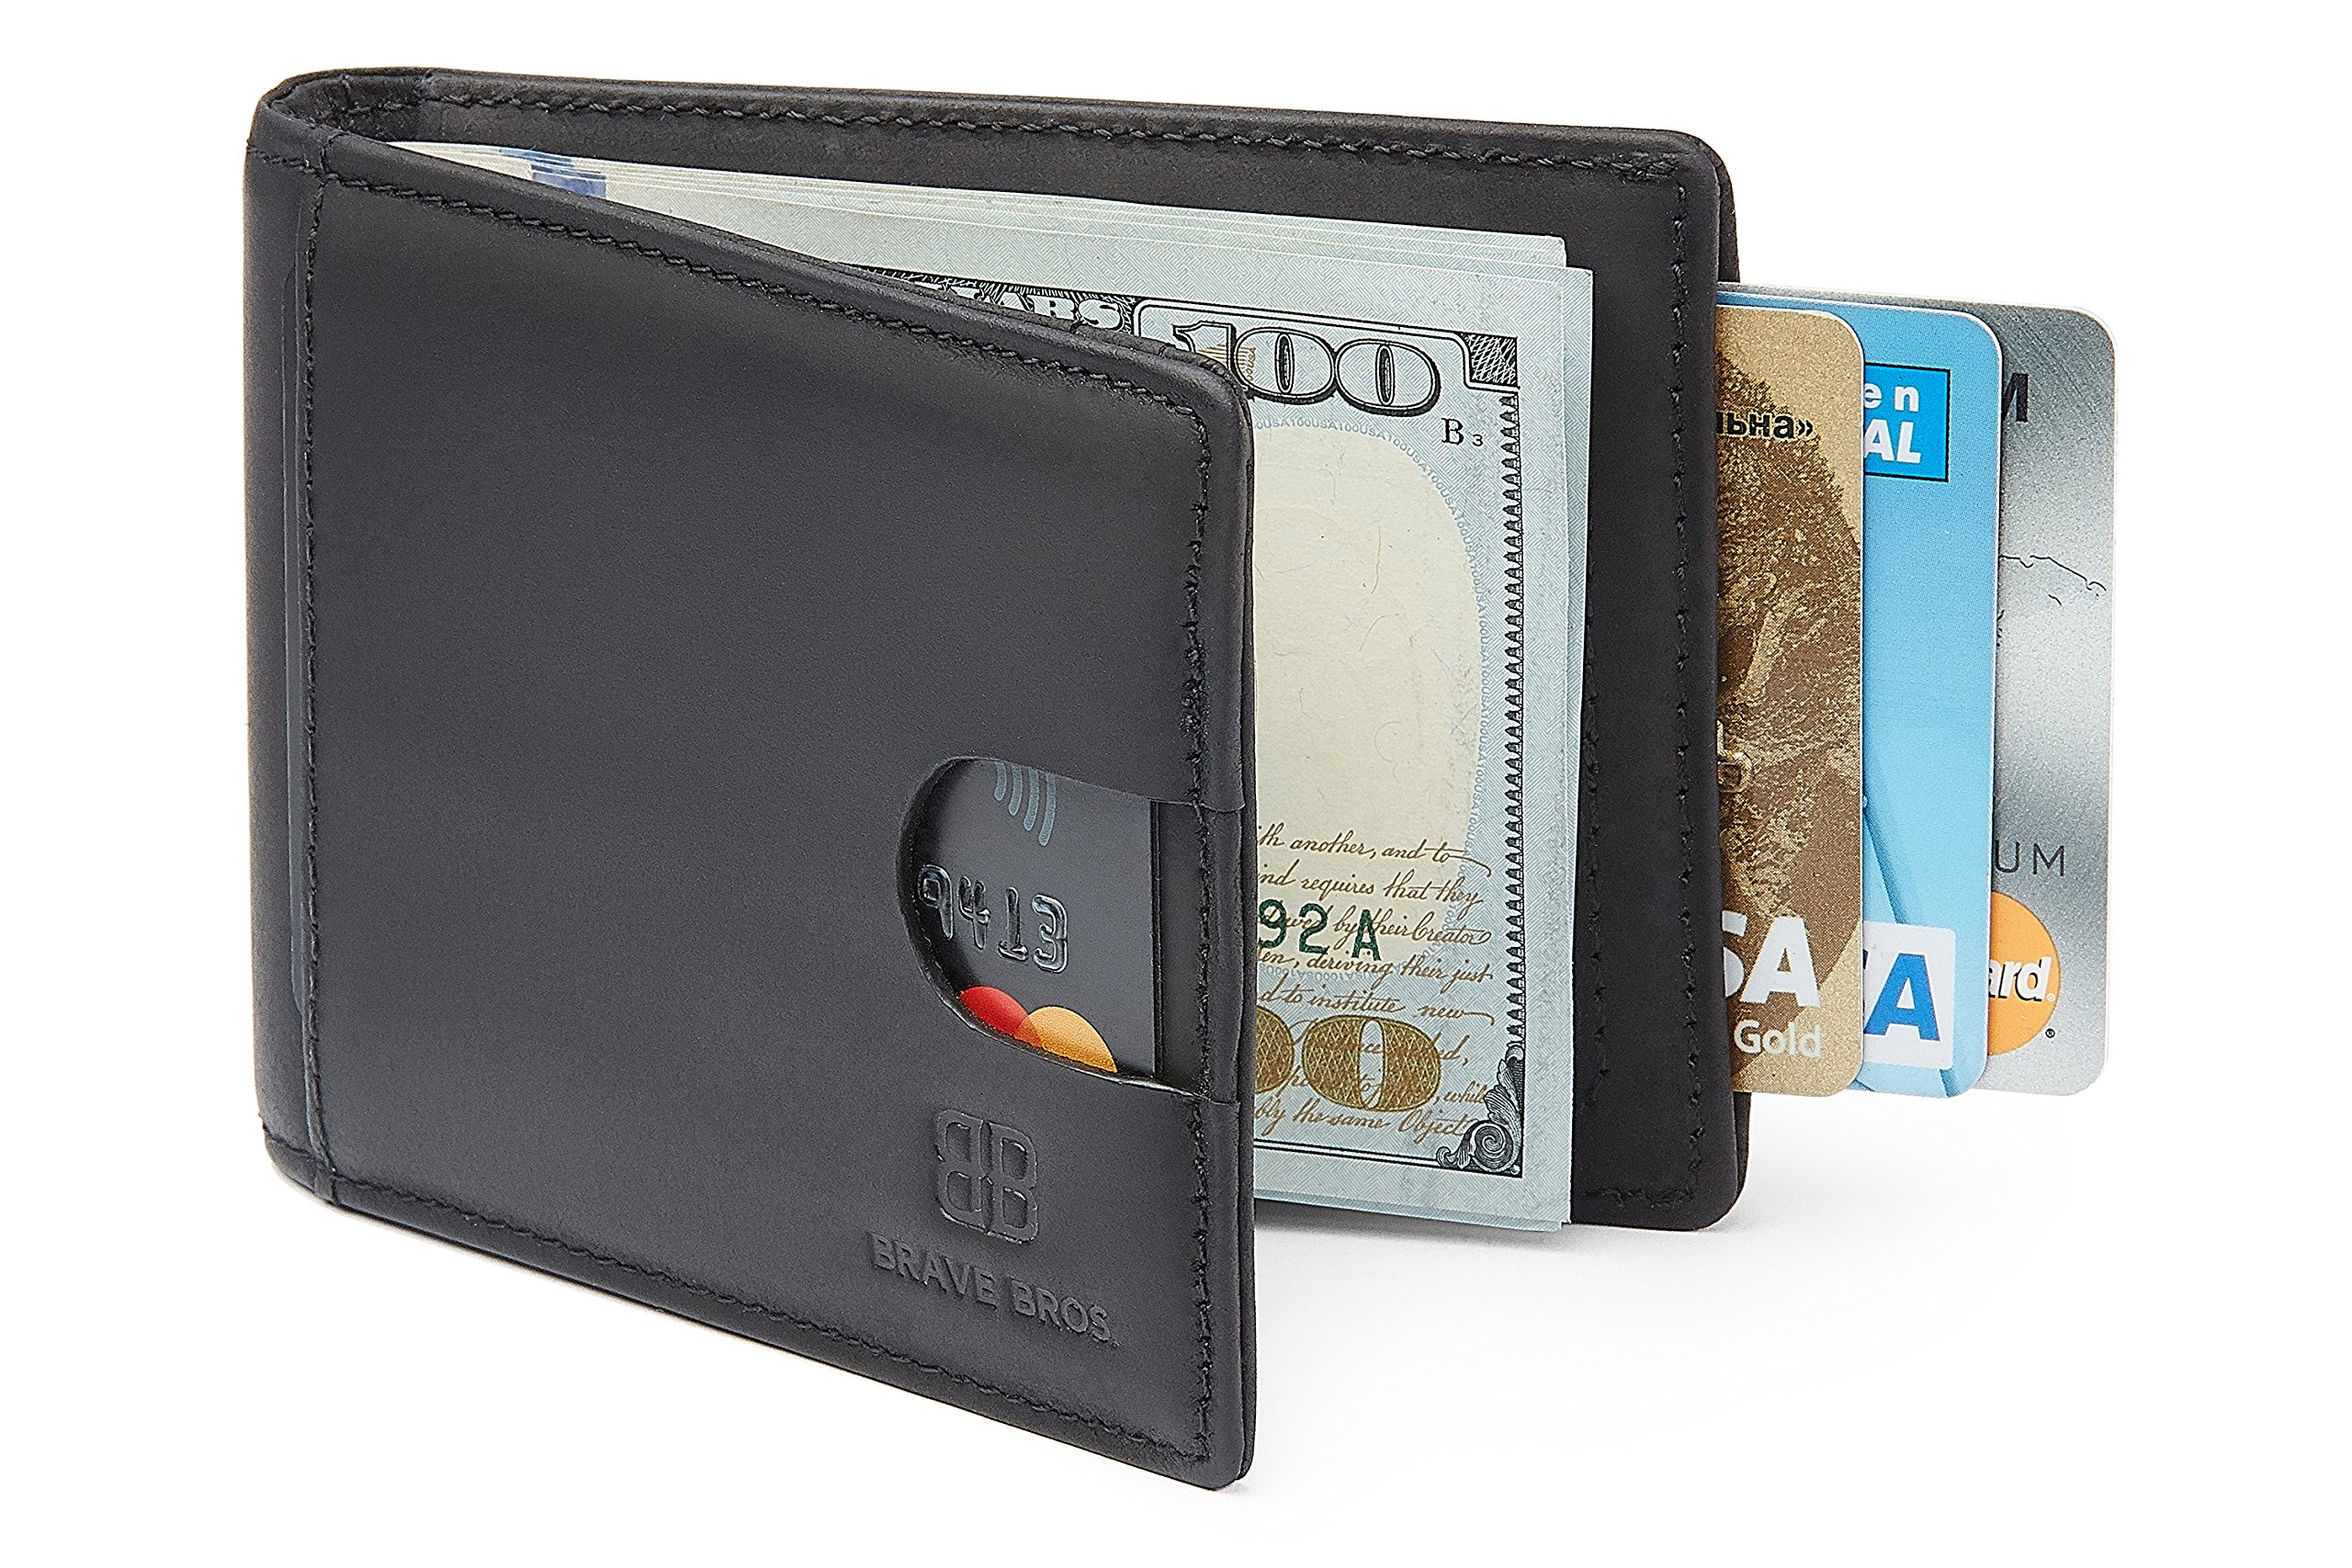 BRAVE BROS - Slim Bifold Genuine Leather front Pocket Wallet with Money Clip RFID Blocking Thin Minimalist Wallets for Men (Charcoal Black)